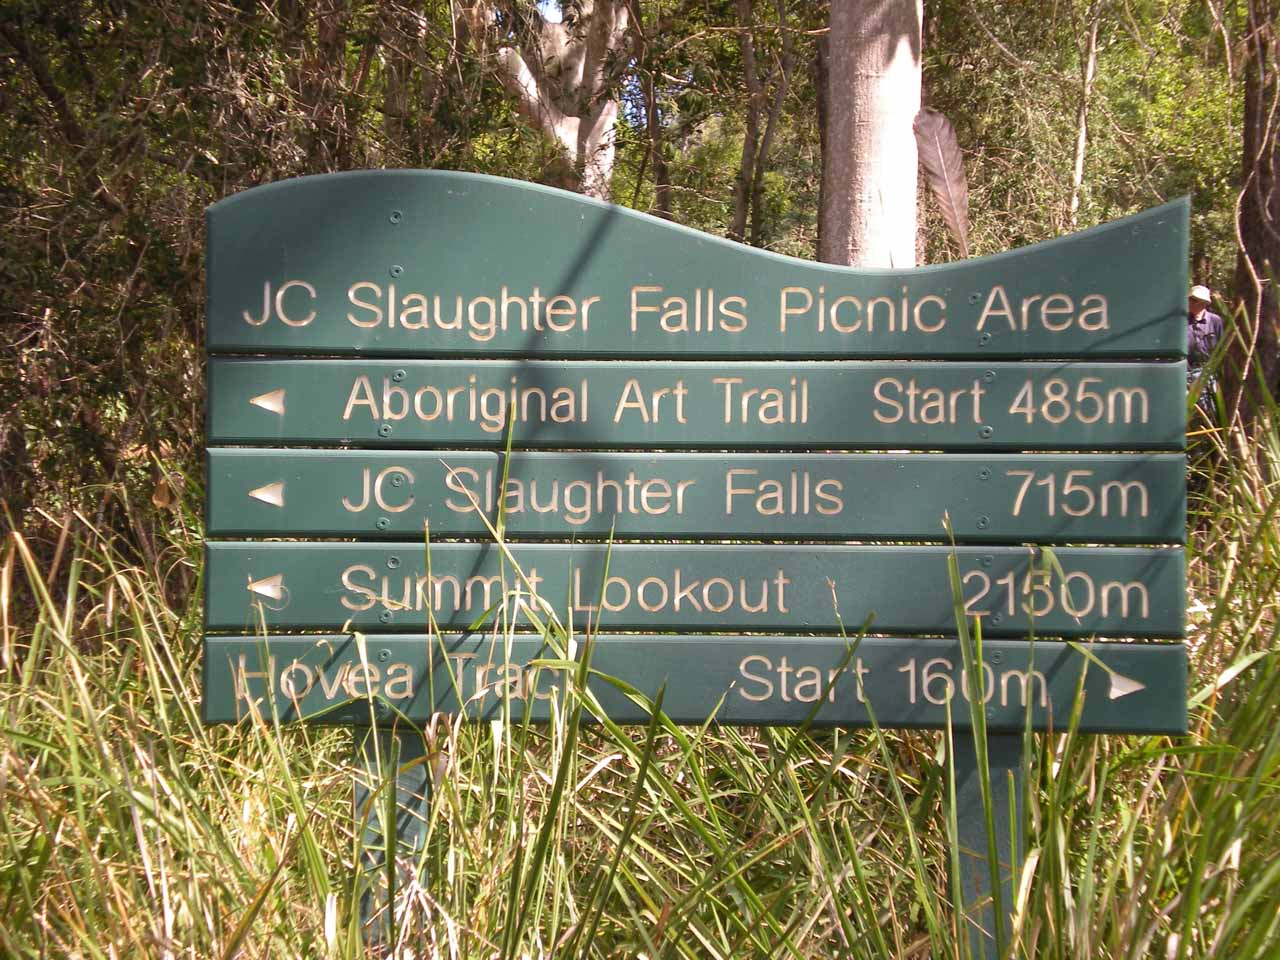 The sign at the JC Slaughter Falls Picnic Area at the start of our walk